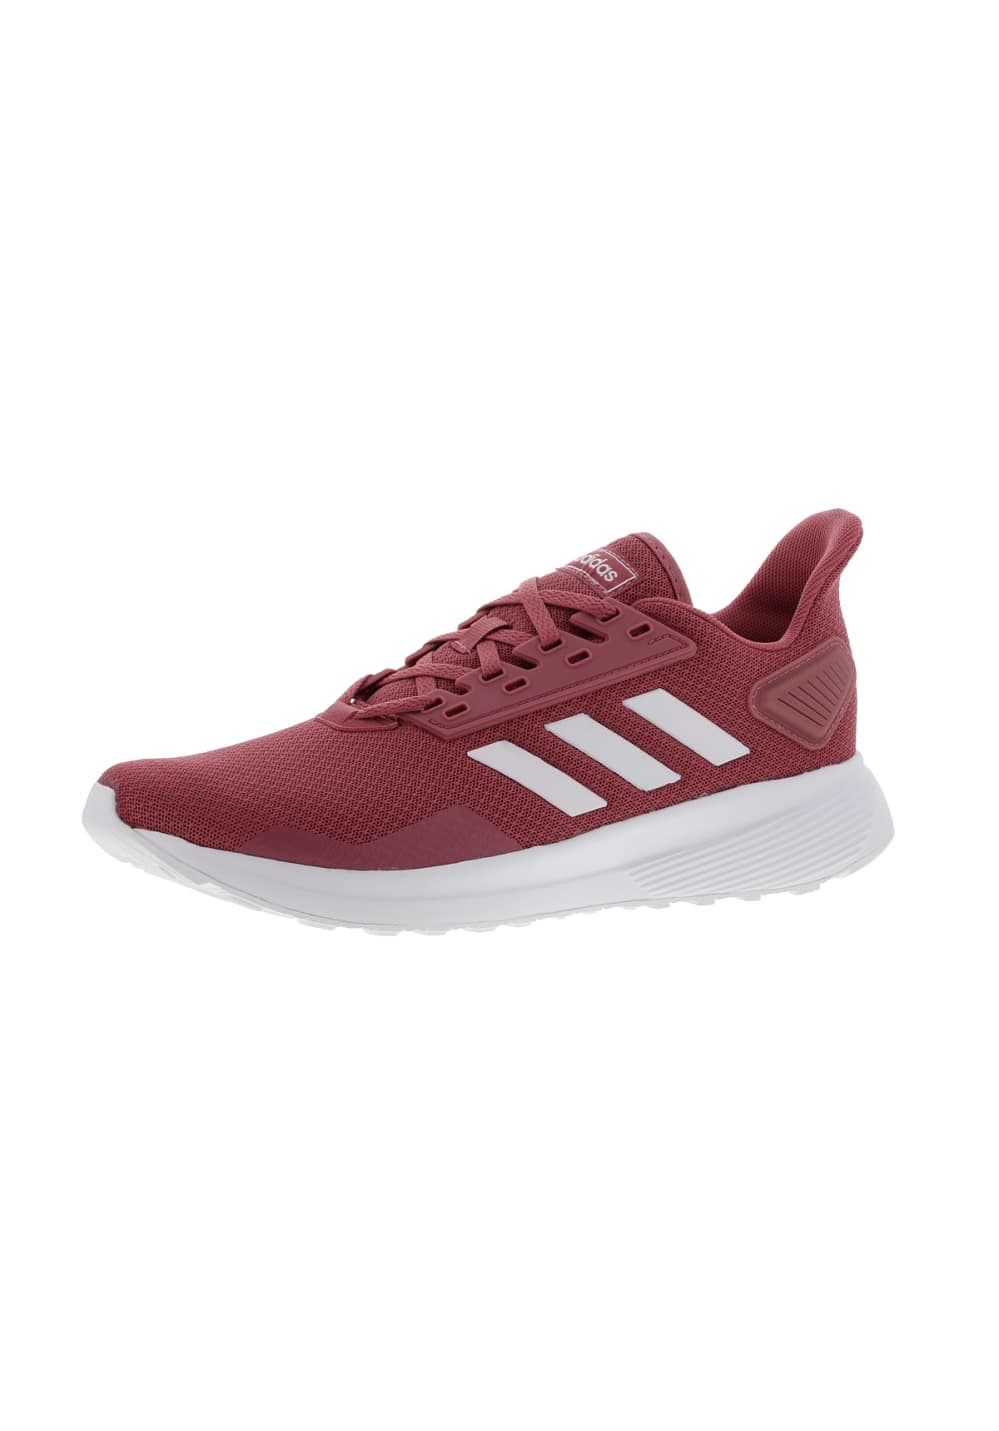 low priced b0bd5 e259b adidas Duramo 9 - Running shoes for Women - Red